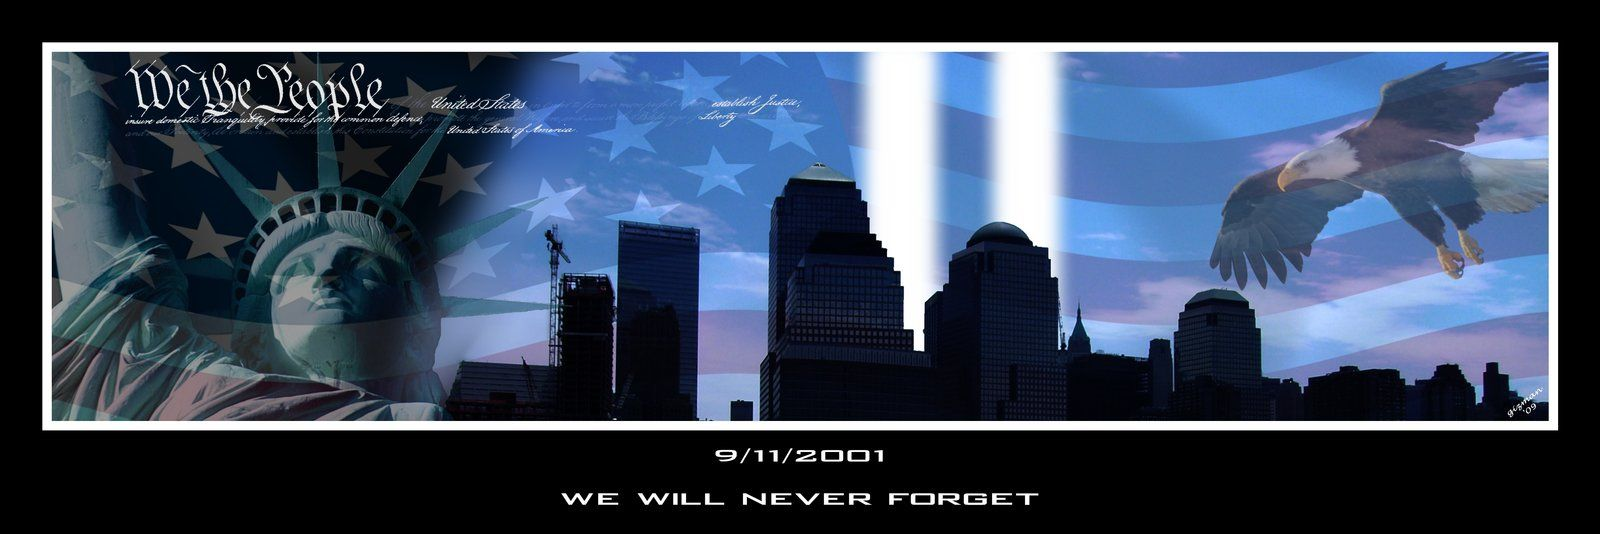 9 11 Never Forget Quotes ☆ We Will Never Forget ☆  ☆ September 11Th 2001  We Will